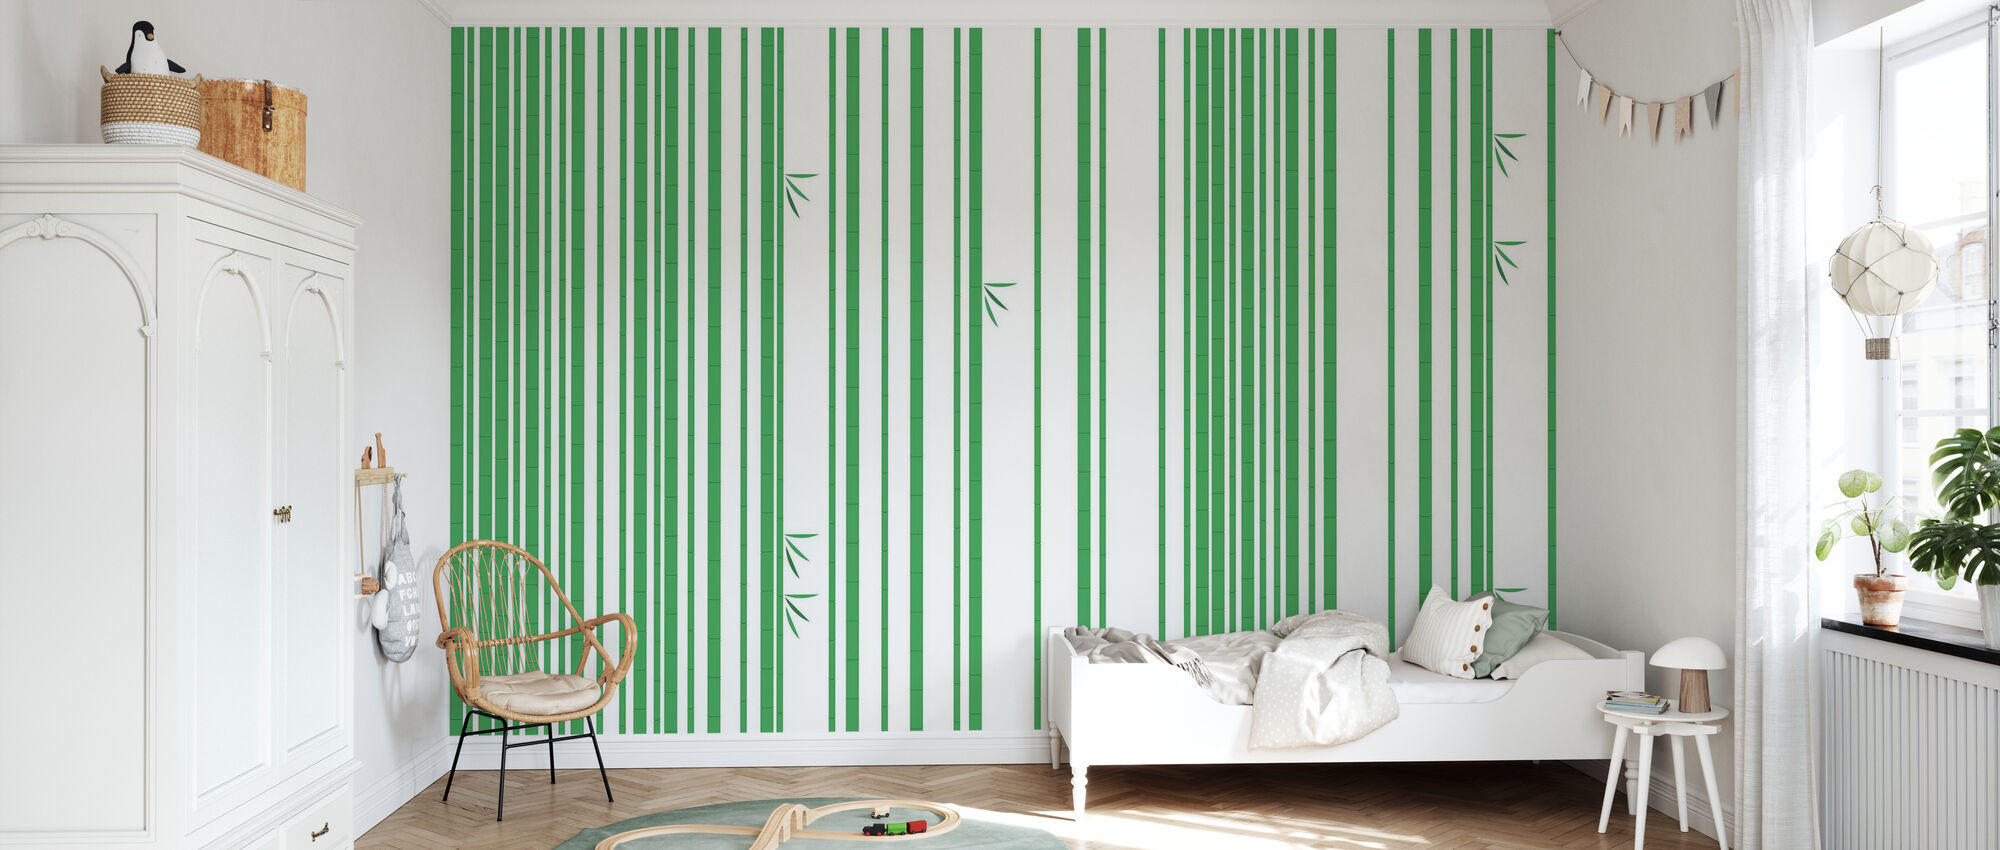 Bambu Forest Groen - Behang - Kinderkamer